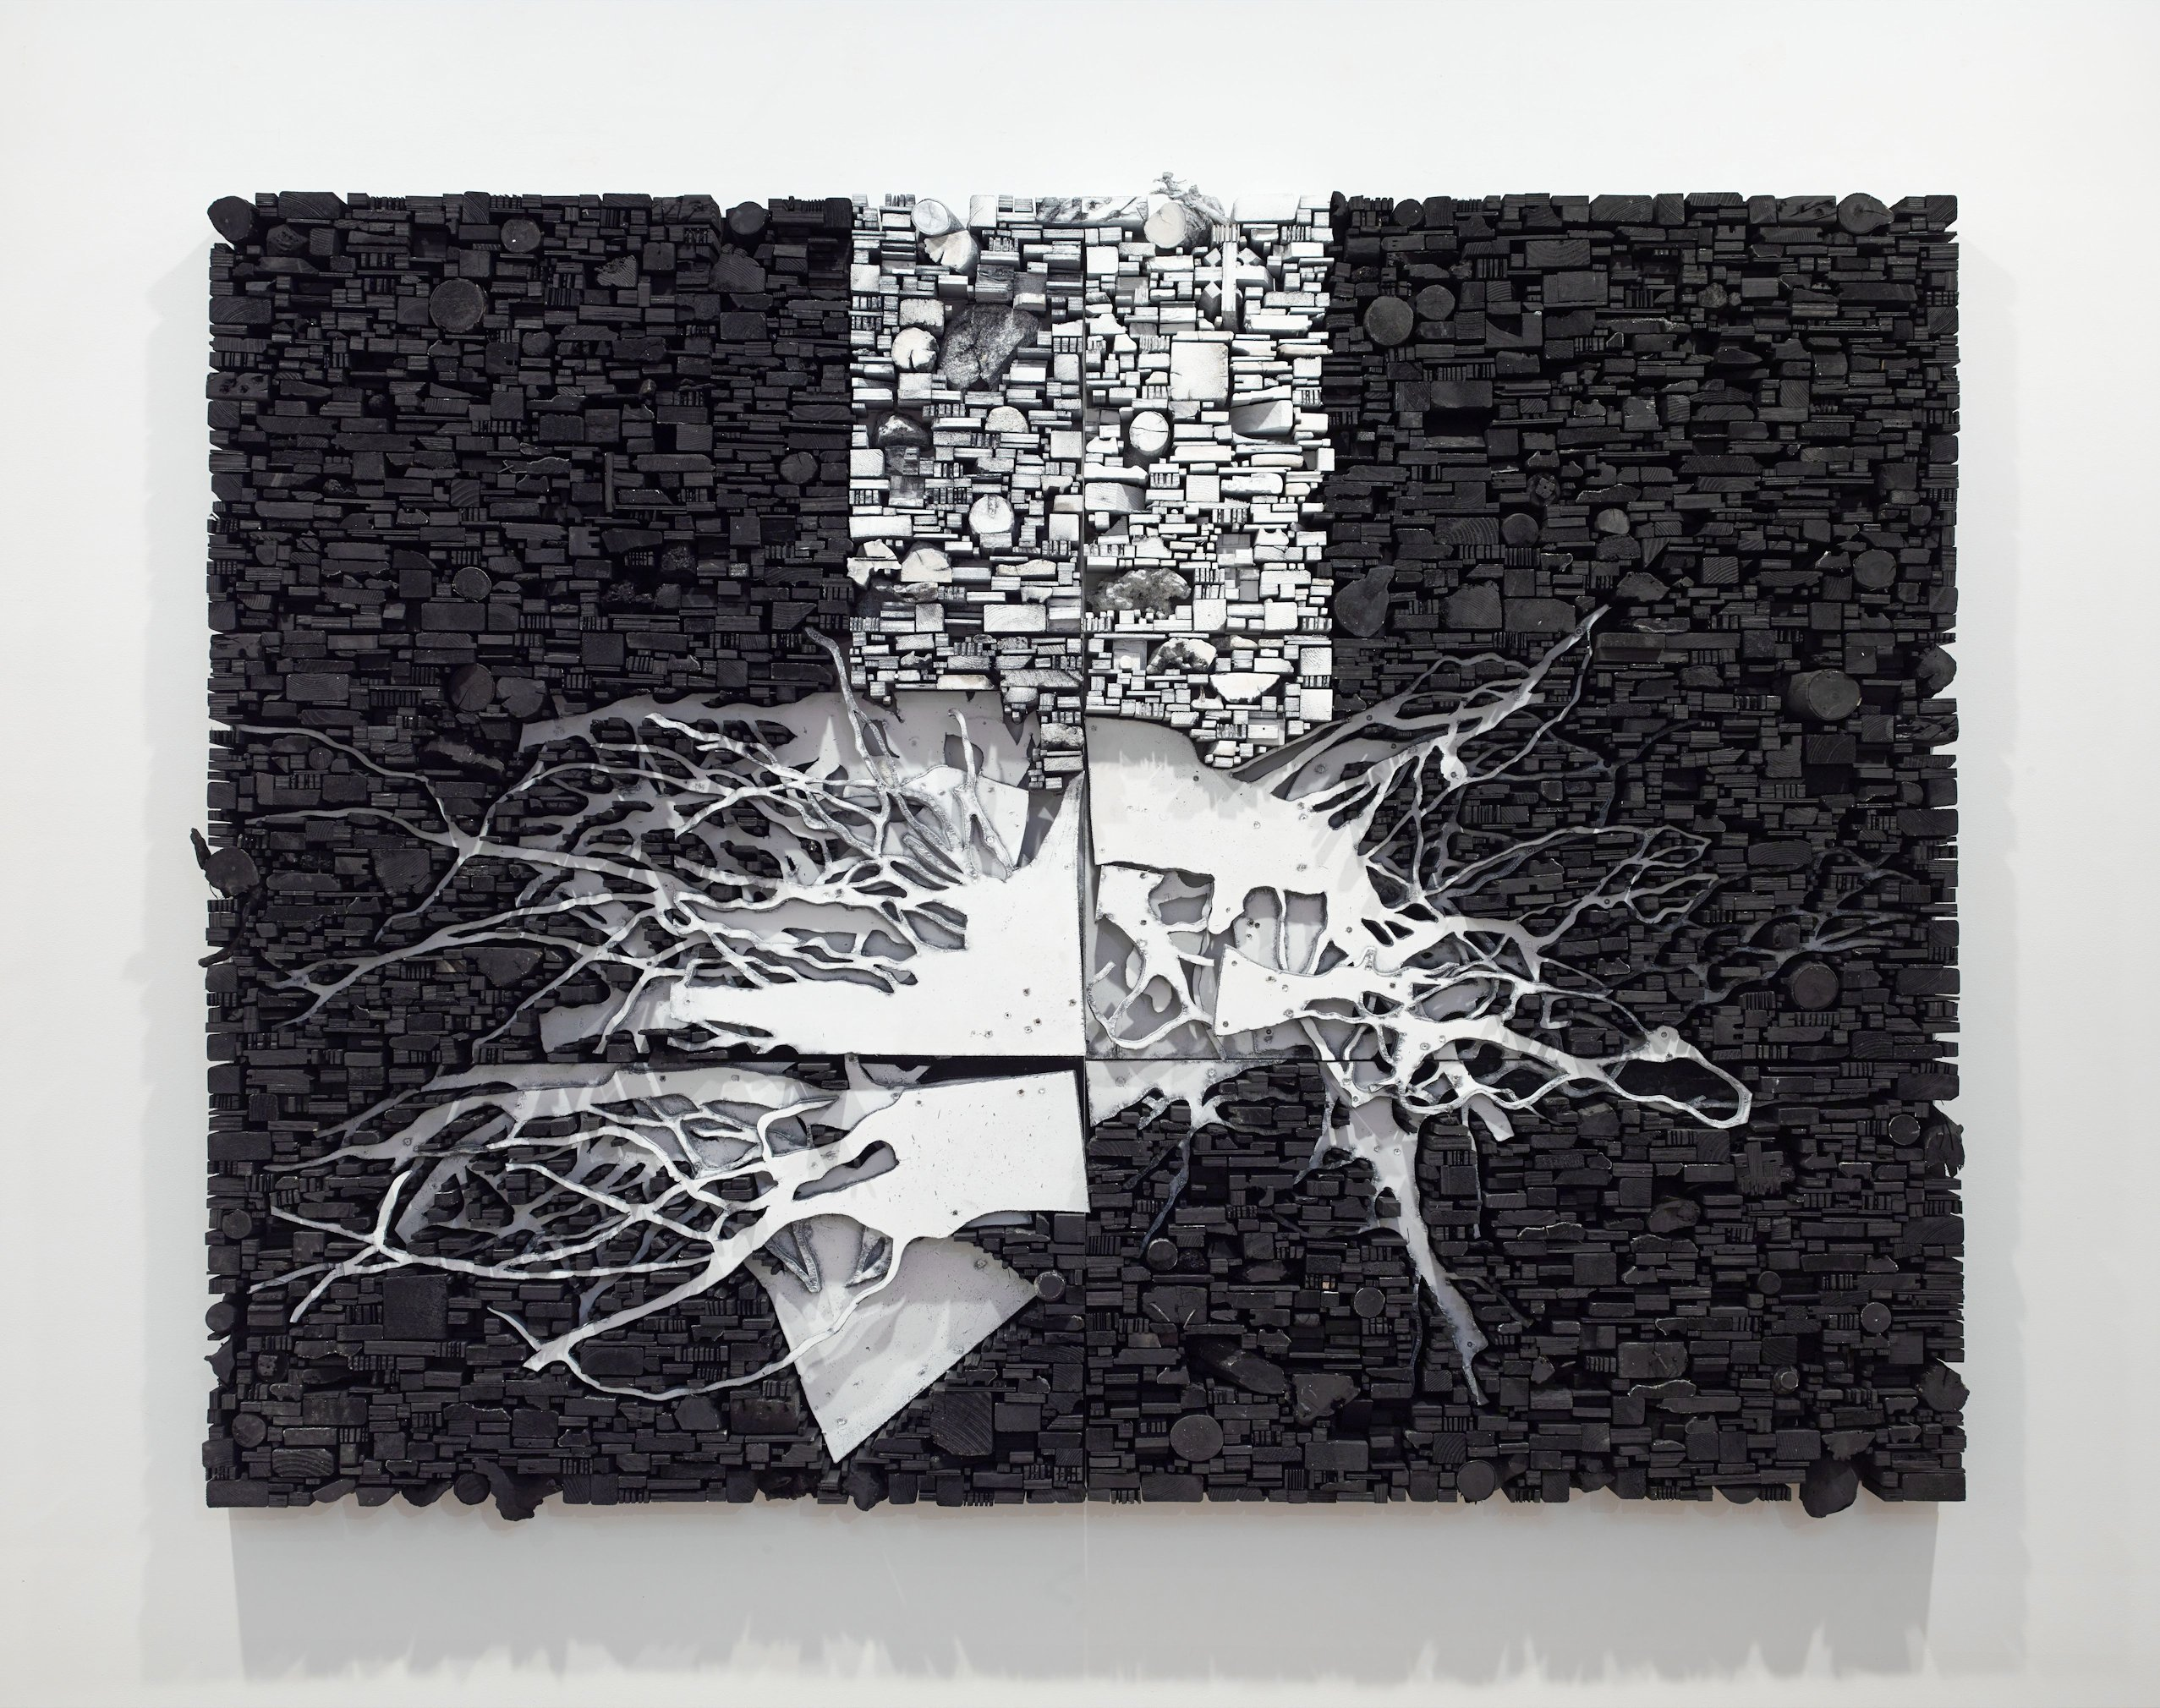 Leonardo Drew is an artist known for his large wall-mounted sculptures composed of jagged tree trunk